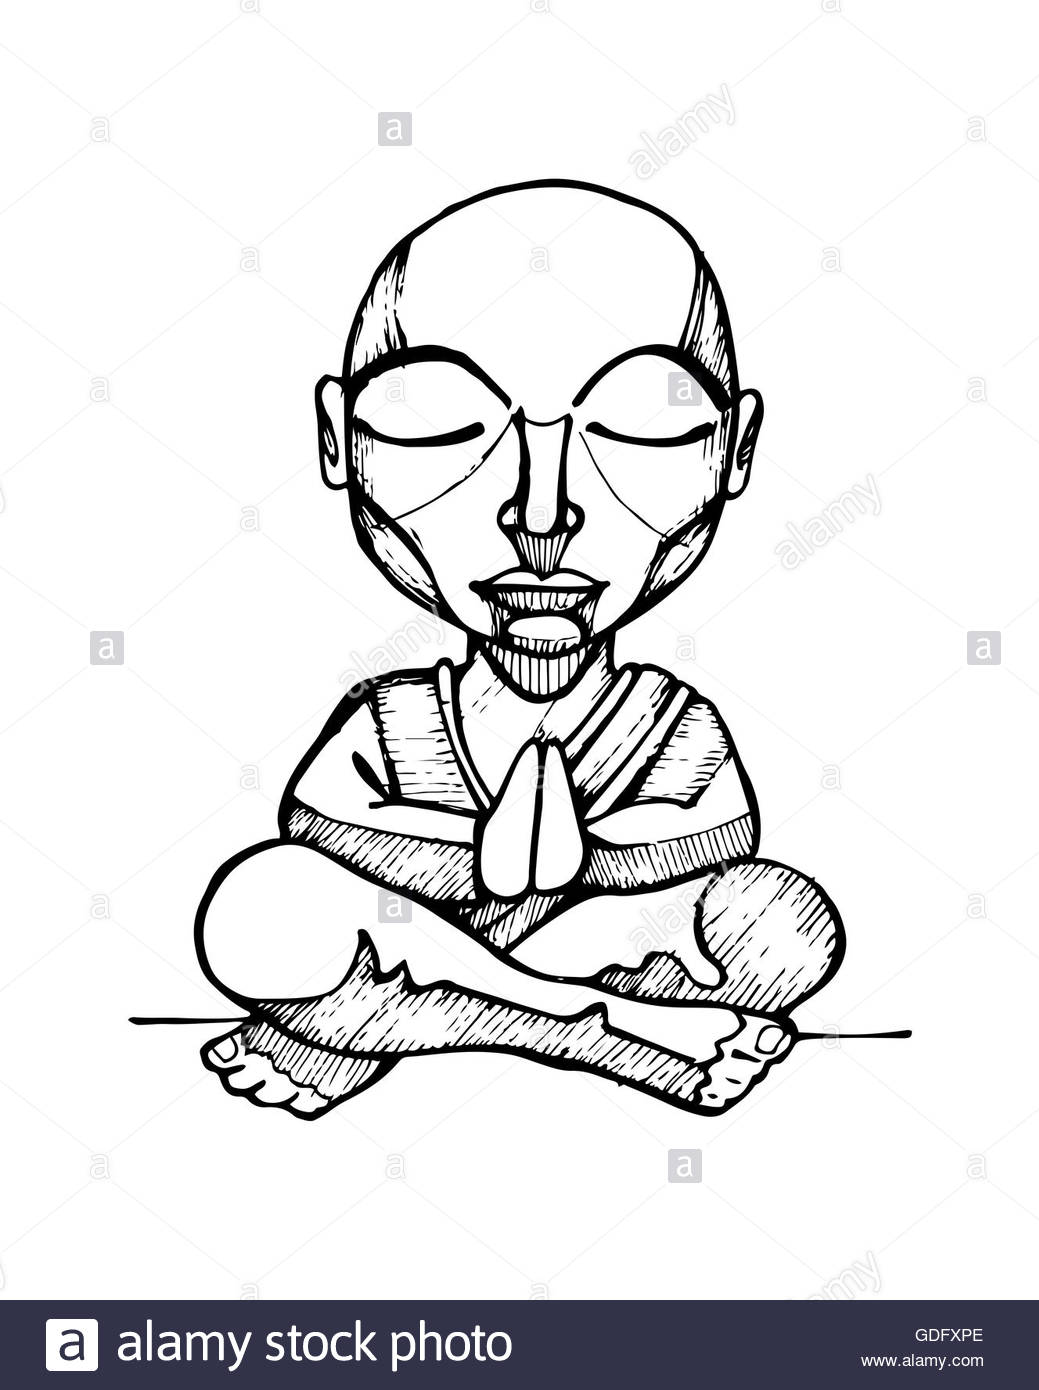 1039x1390 Hand Drawn Illustration Or Drawing Of A Cartoon Budhist Monk Stock